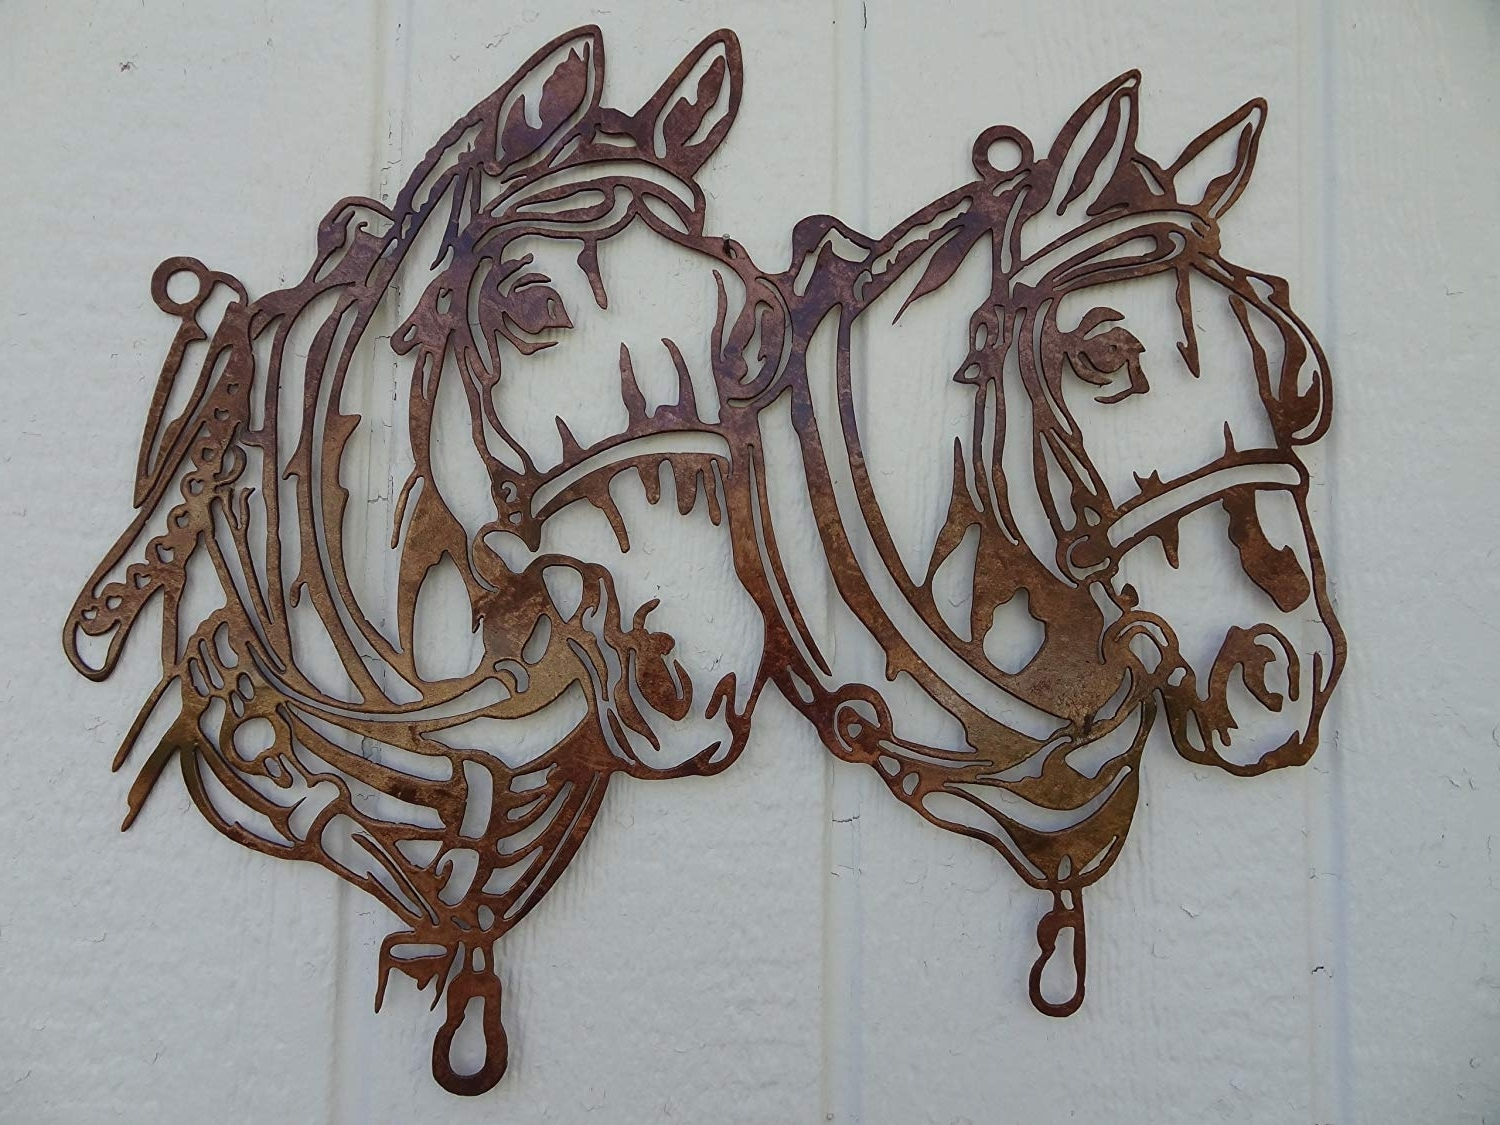 Trendy Horse Wall Art Inside Amazon: Draft Horse Head Metal Wall Art Country Rustic Home (View 9 of 15)